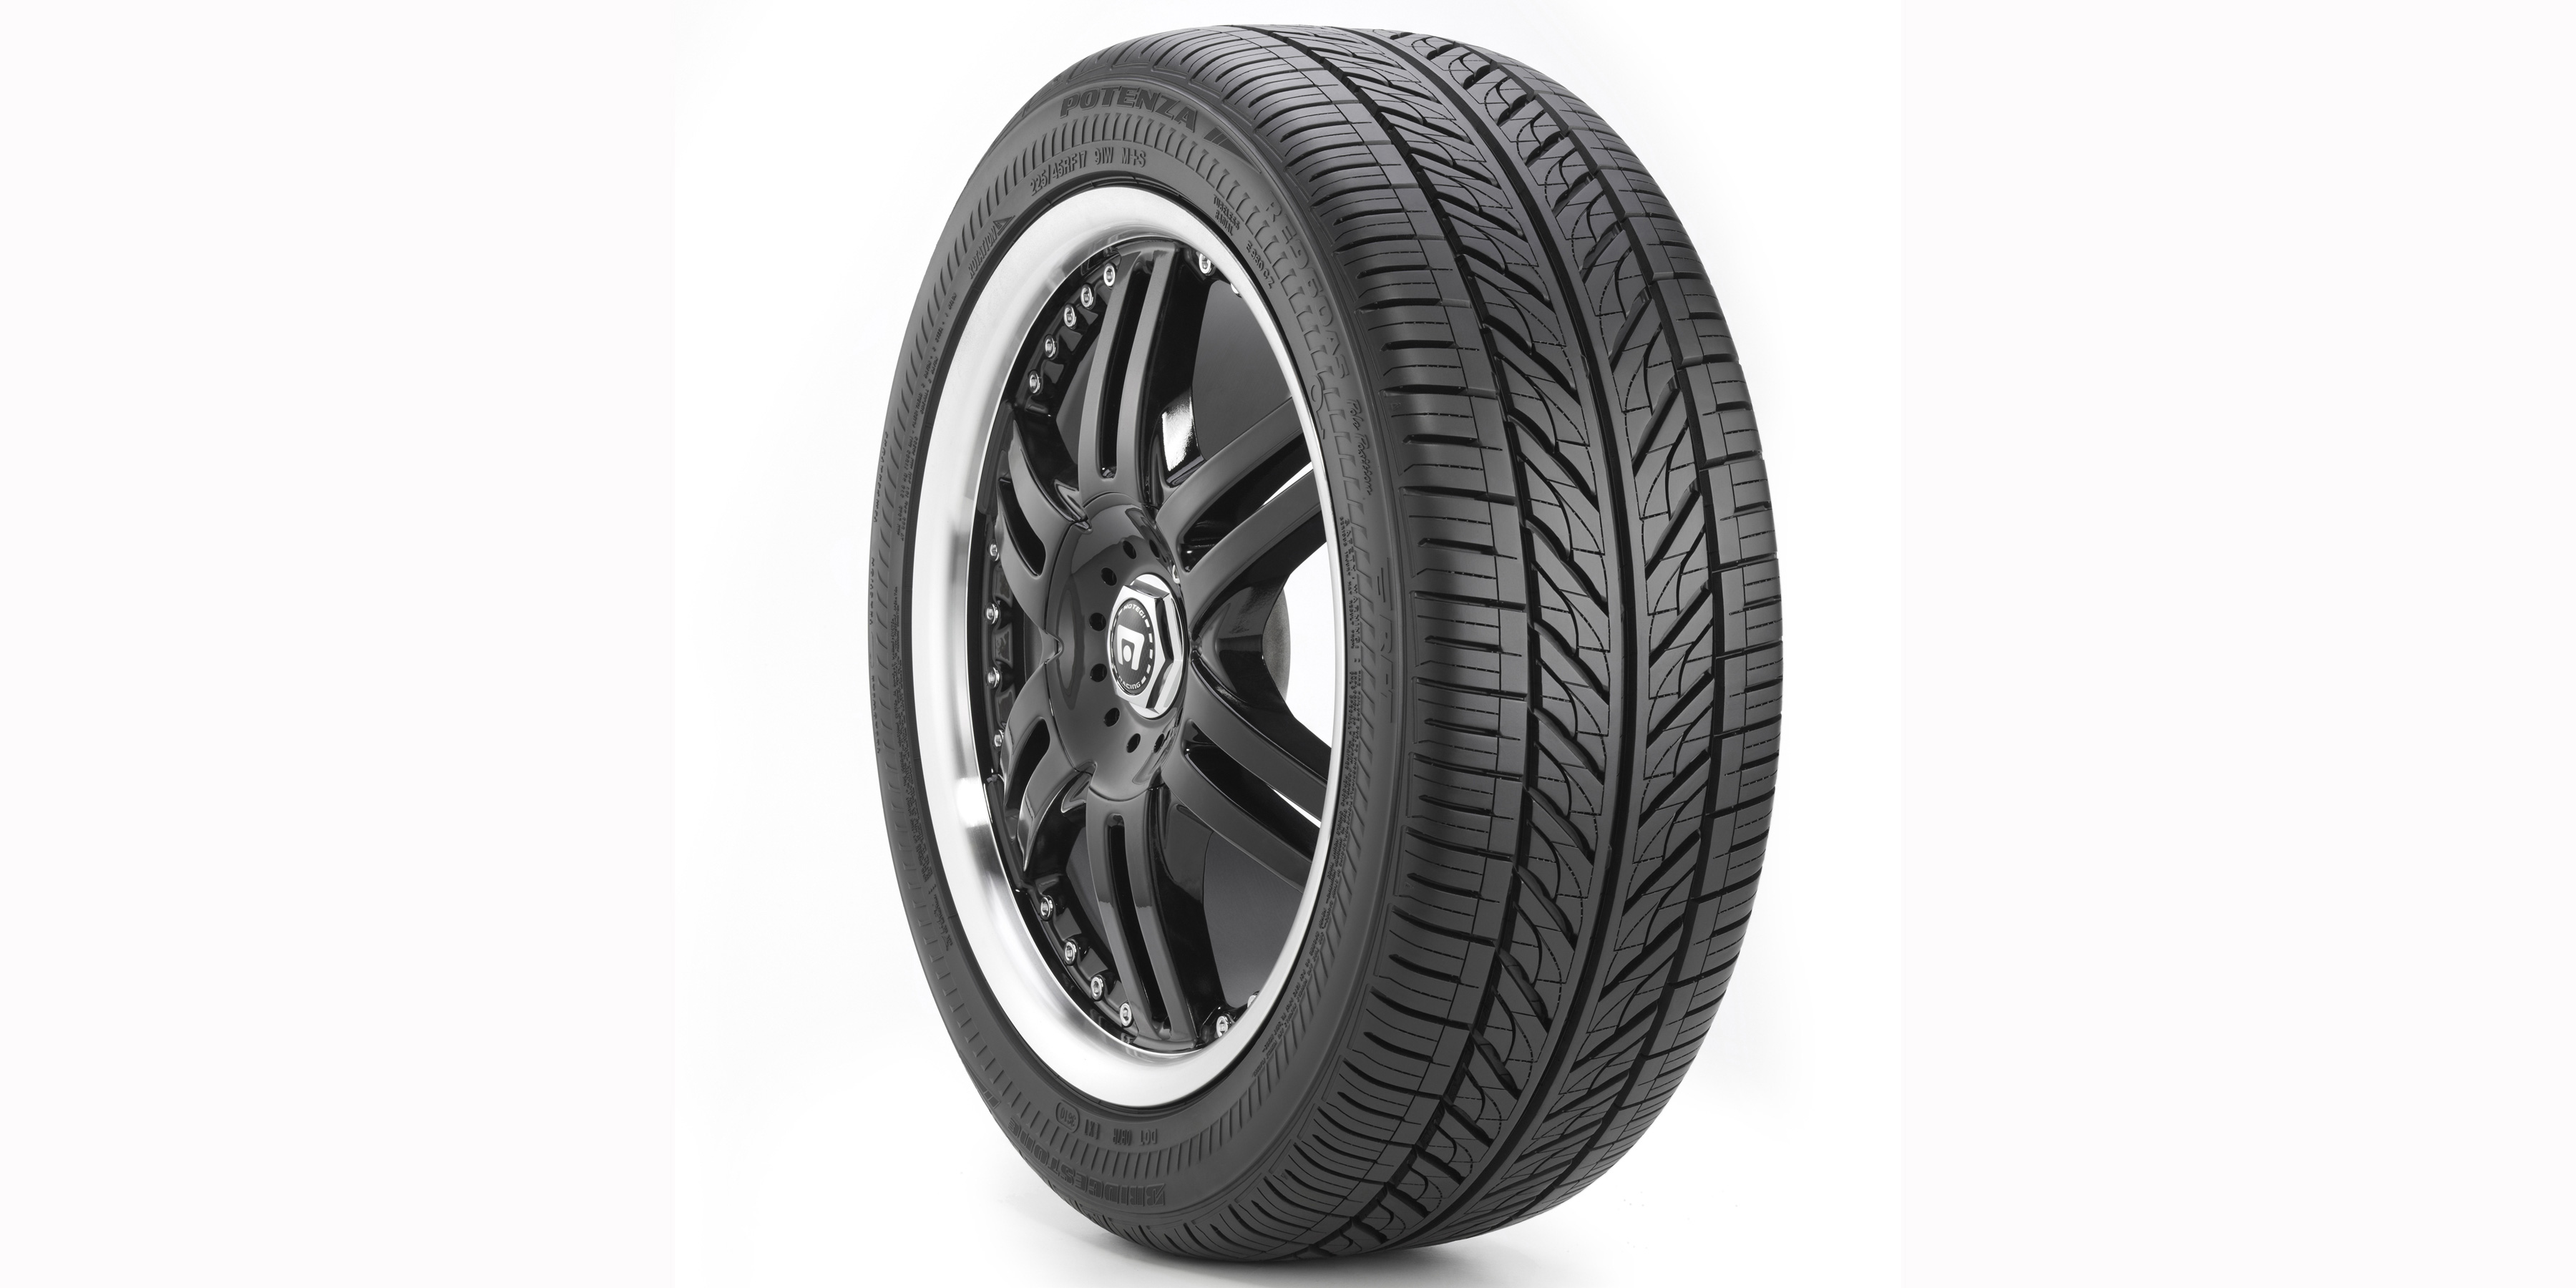 summertime tire buying advice new bridgestone 39 s for your family. Black Bedroom Furniture Sets. Home Design Ideas